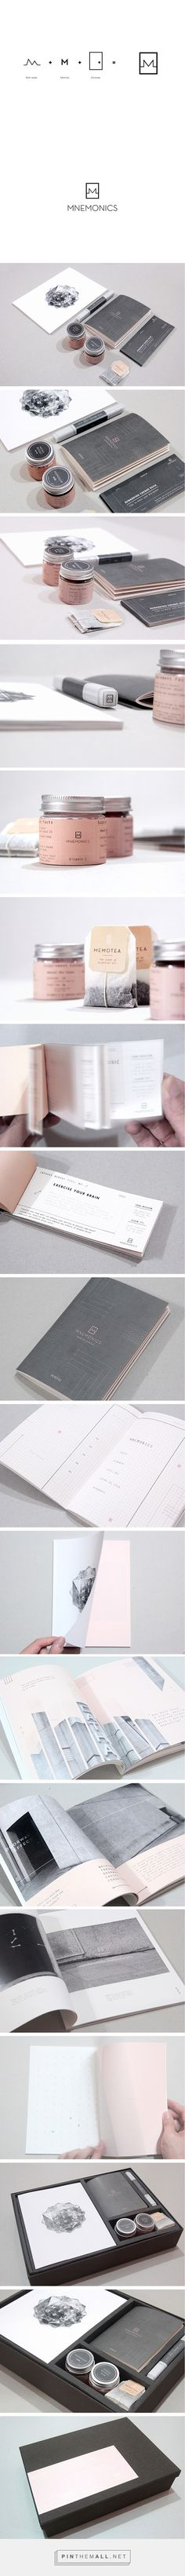 MNEMONICS   BRANDING on Behance by Andy Lim curated by Packaging Diva PD. Branding packaging editorial design print design for an application to aid information retention.